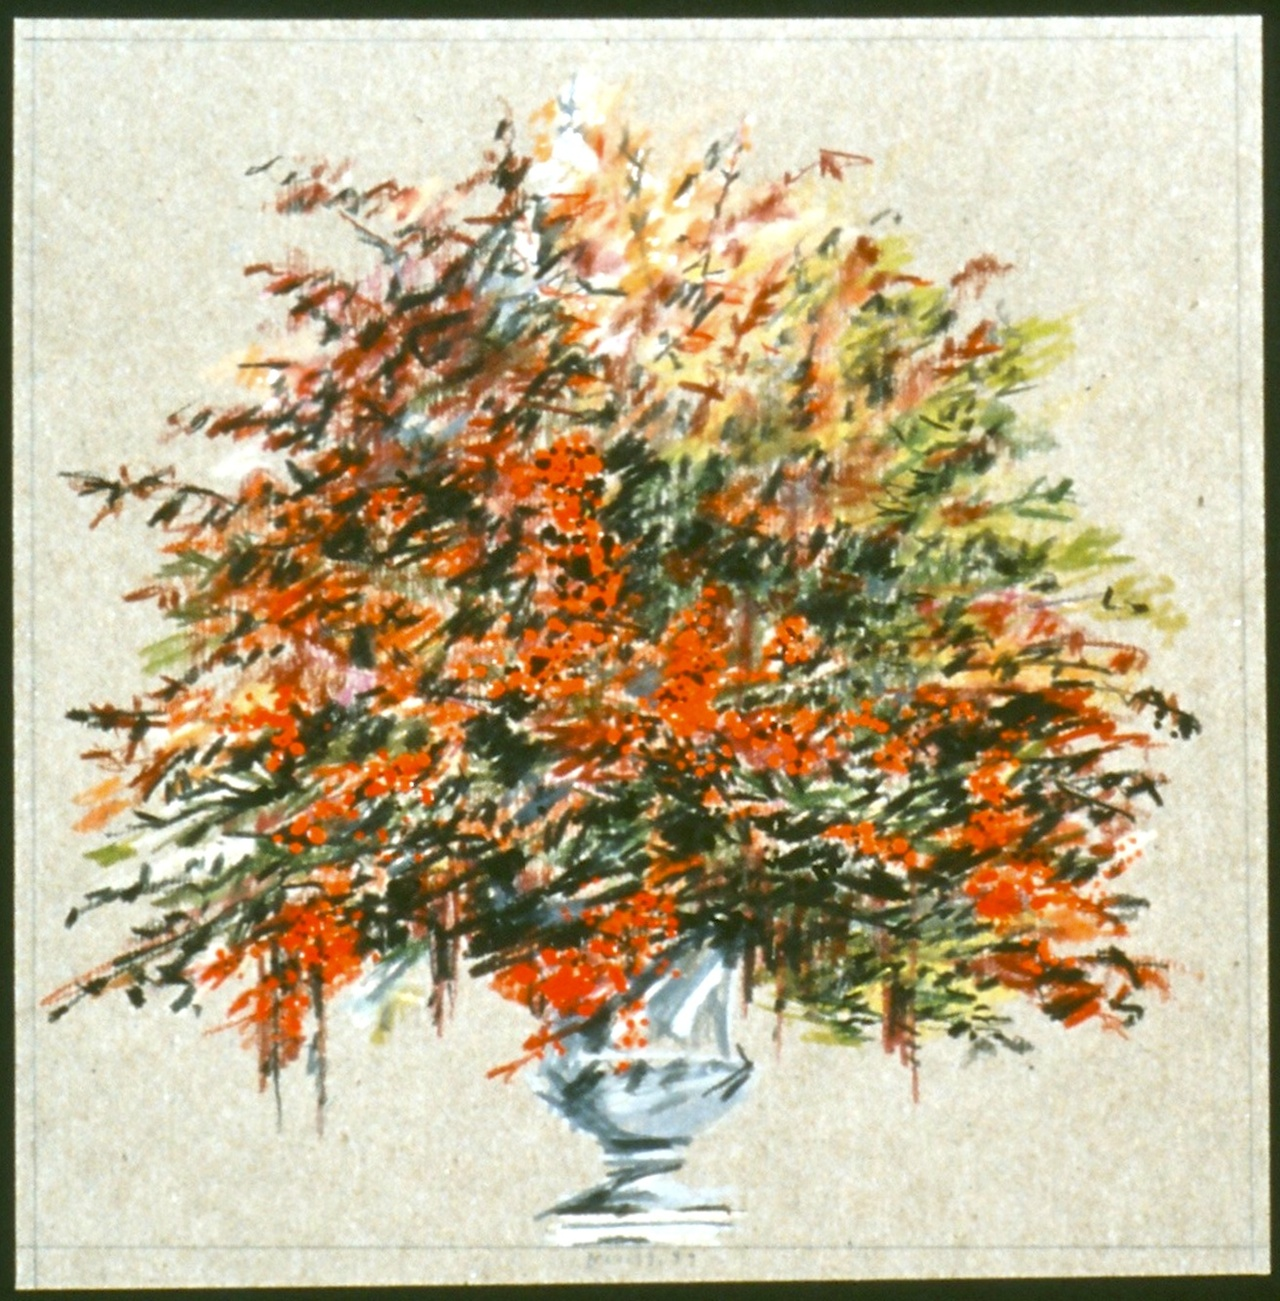 """11.19.99; 7 1/2"""" x 7 1/2""""; collection of Janet Mavec & Wayne Nordberg; colored pencil on paper"""